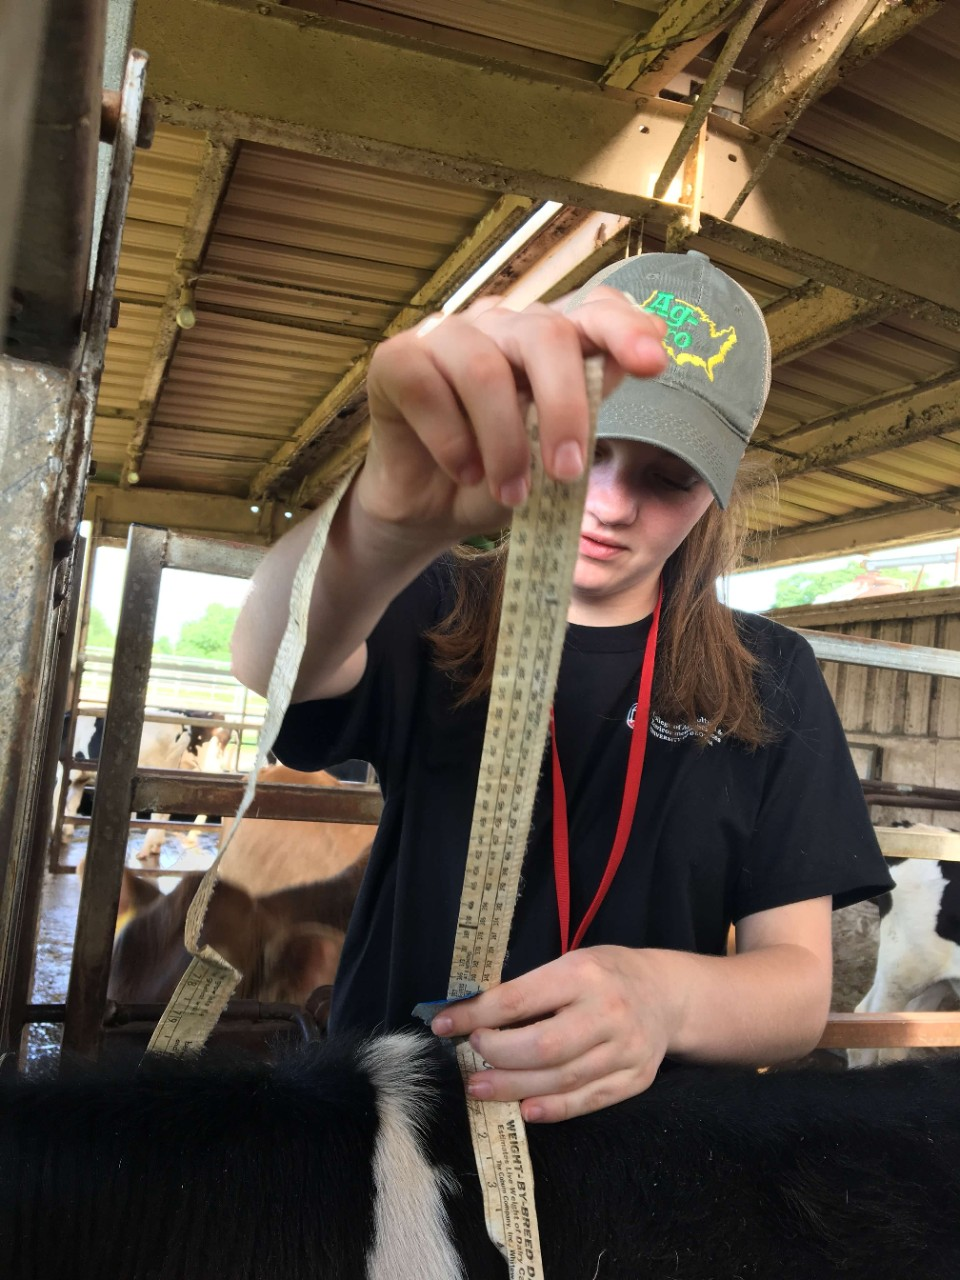 Animal Science in Action participant measuring cow